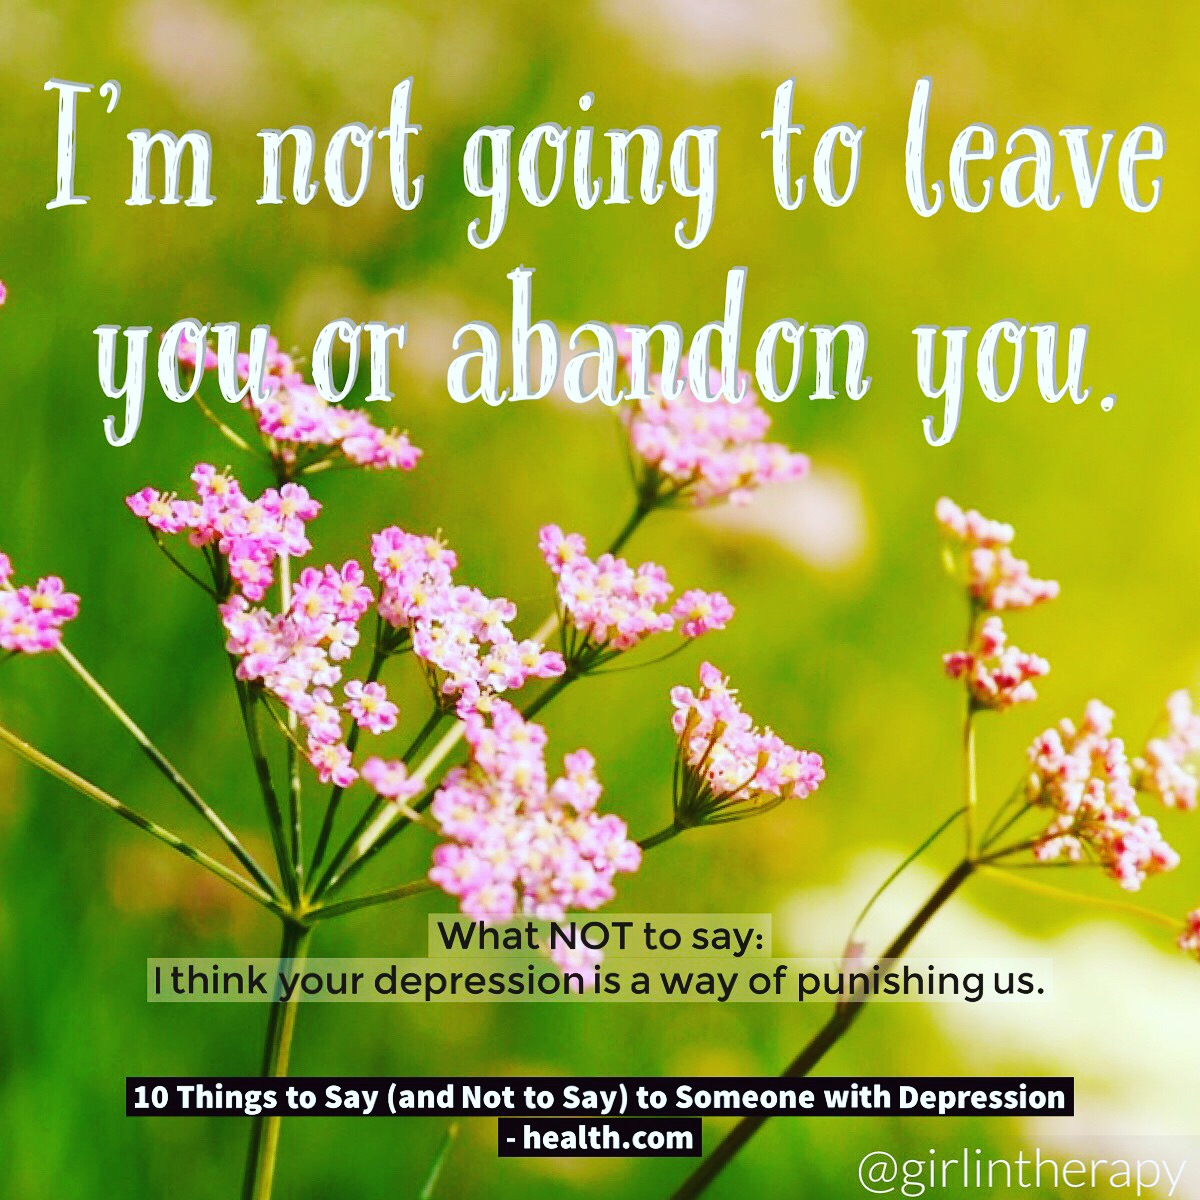 How to help someone in Depression - I'm not going to abandon you